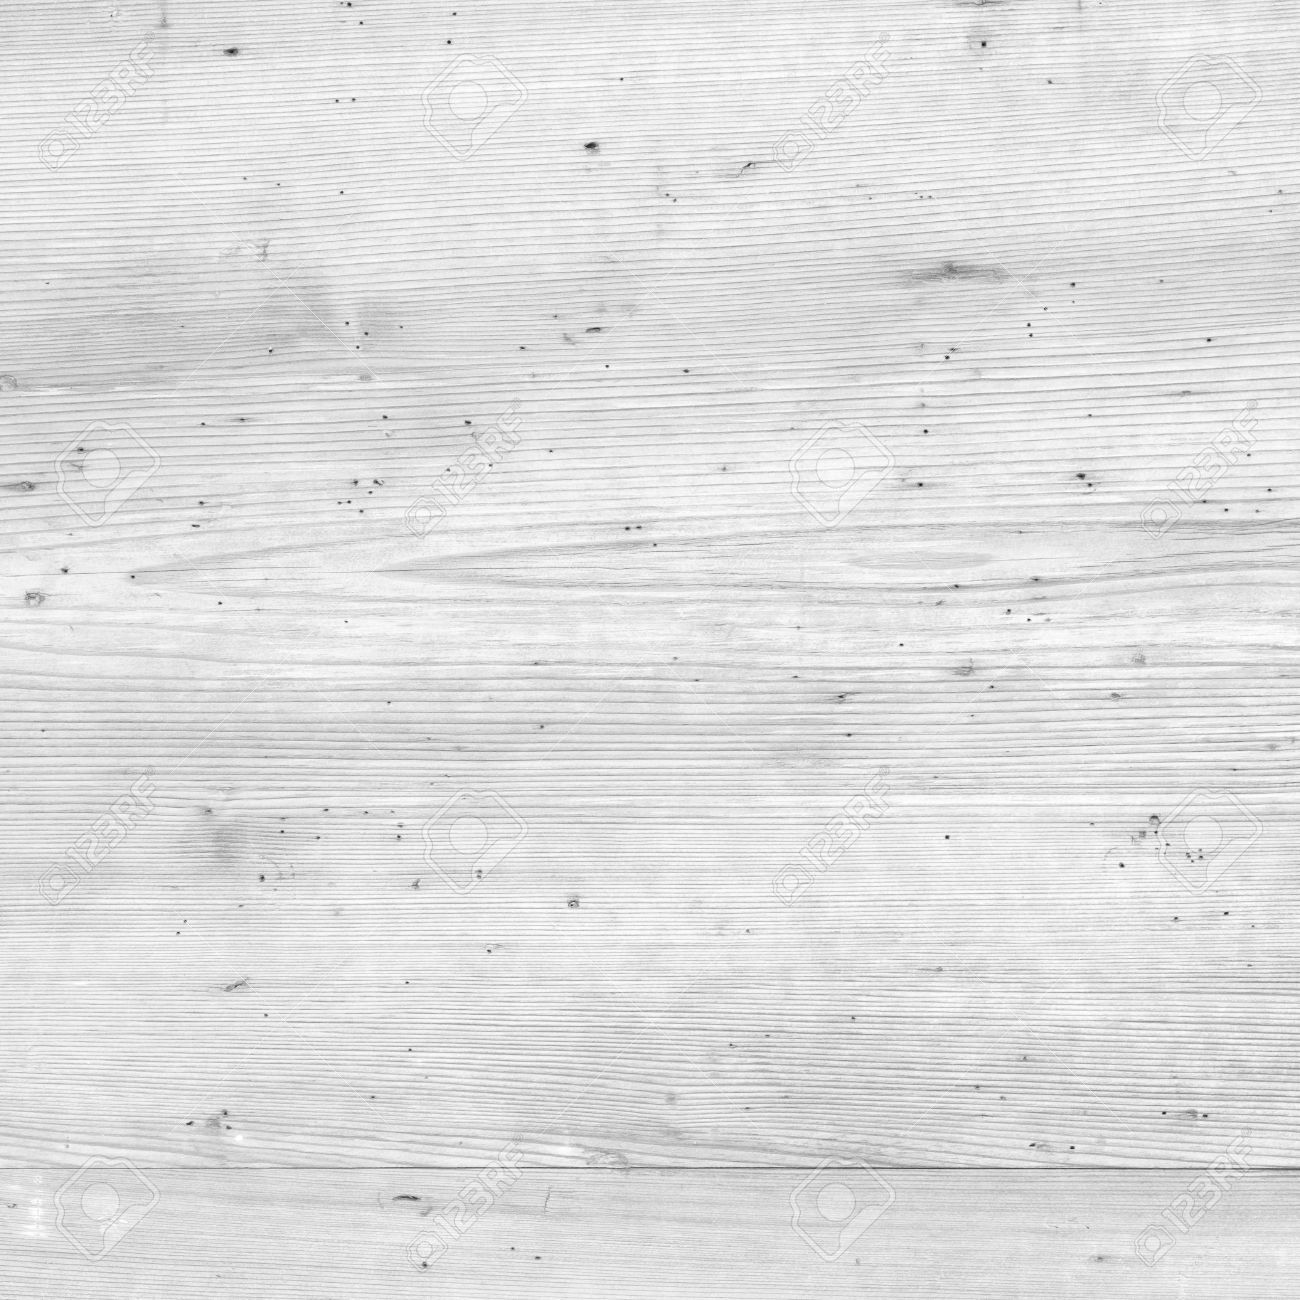 Delicieux Stock Photo   White Natural Wood Texture And Seamless Background